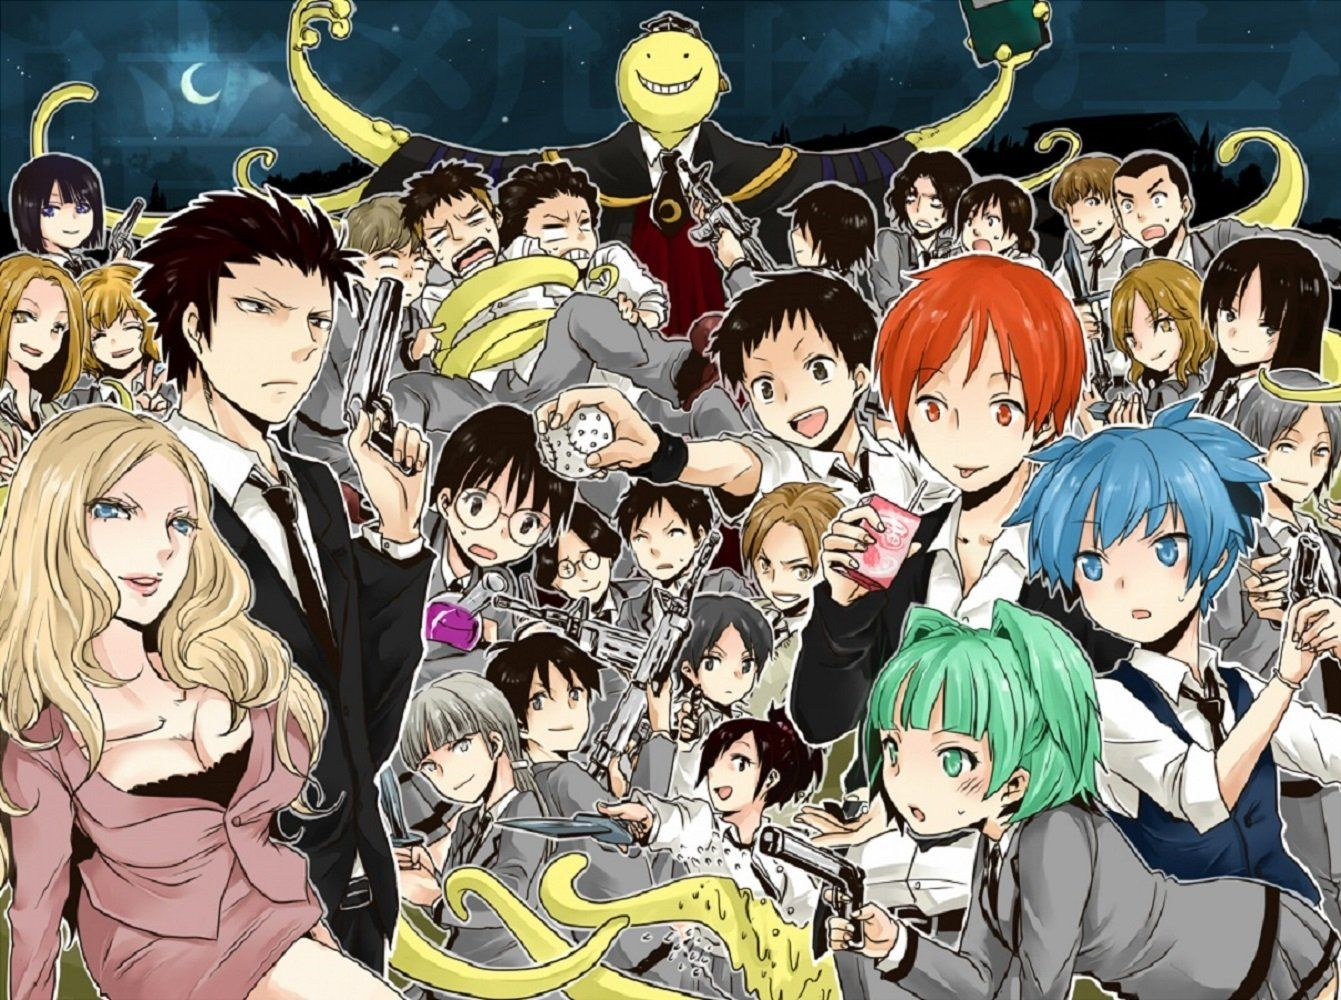 Assassination Classroom 4K Wallpapers - Top Free ...